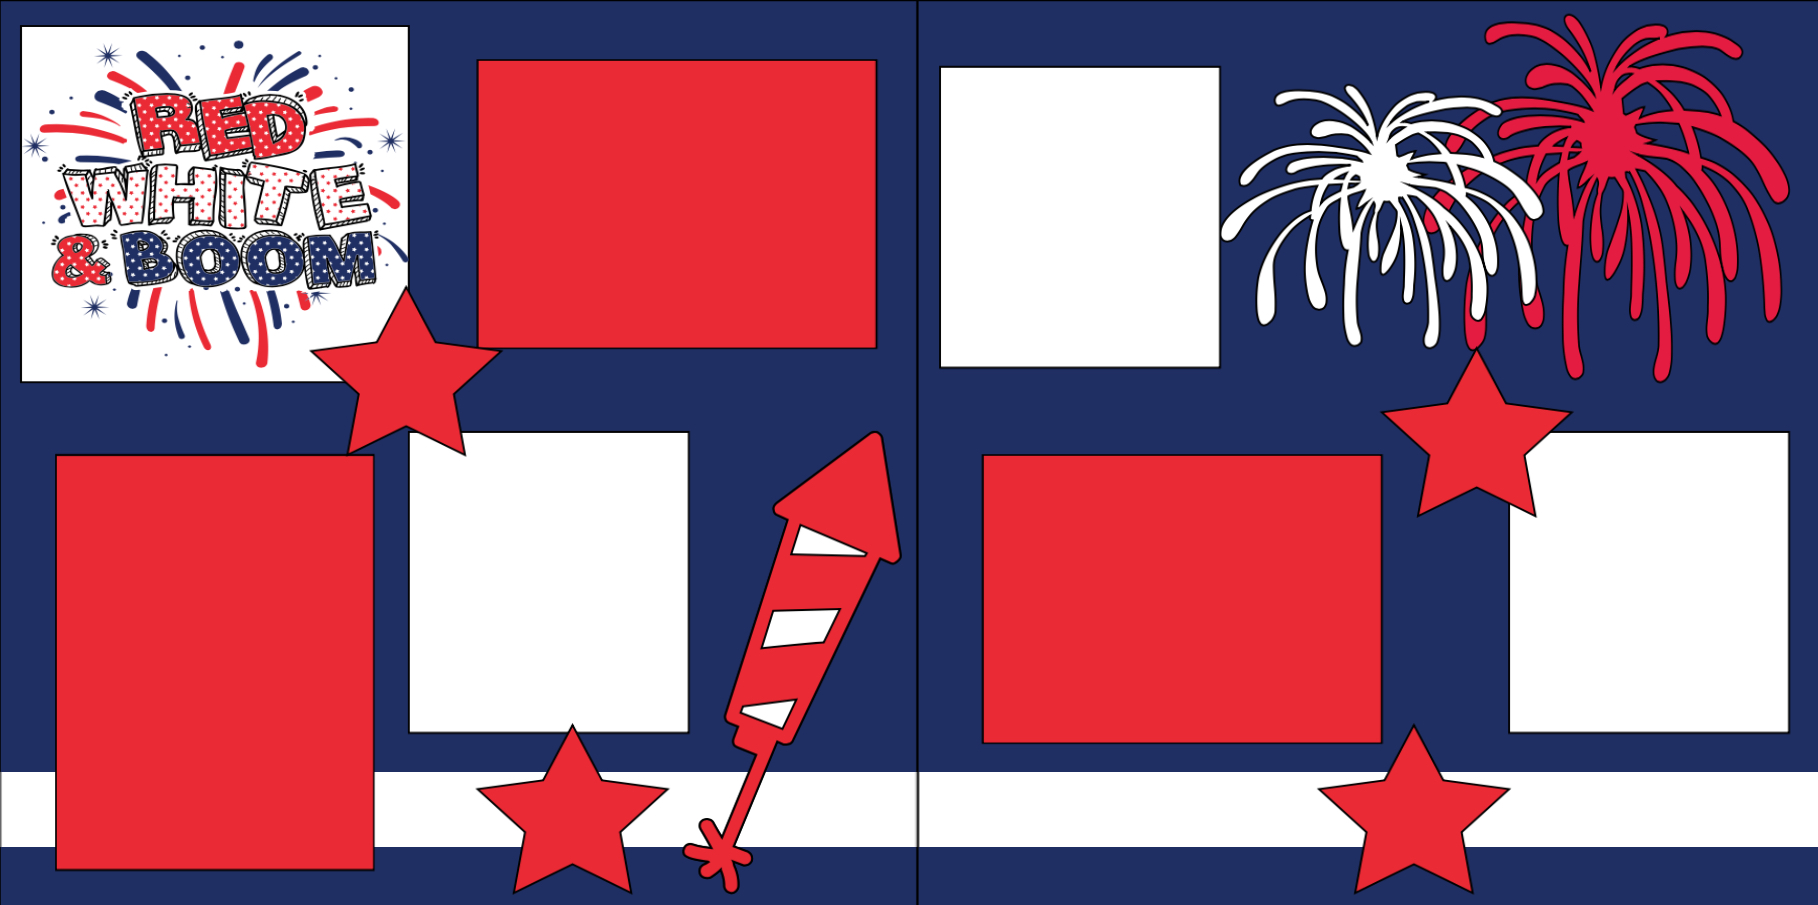 Red white and boom -  page kit